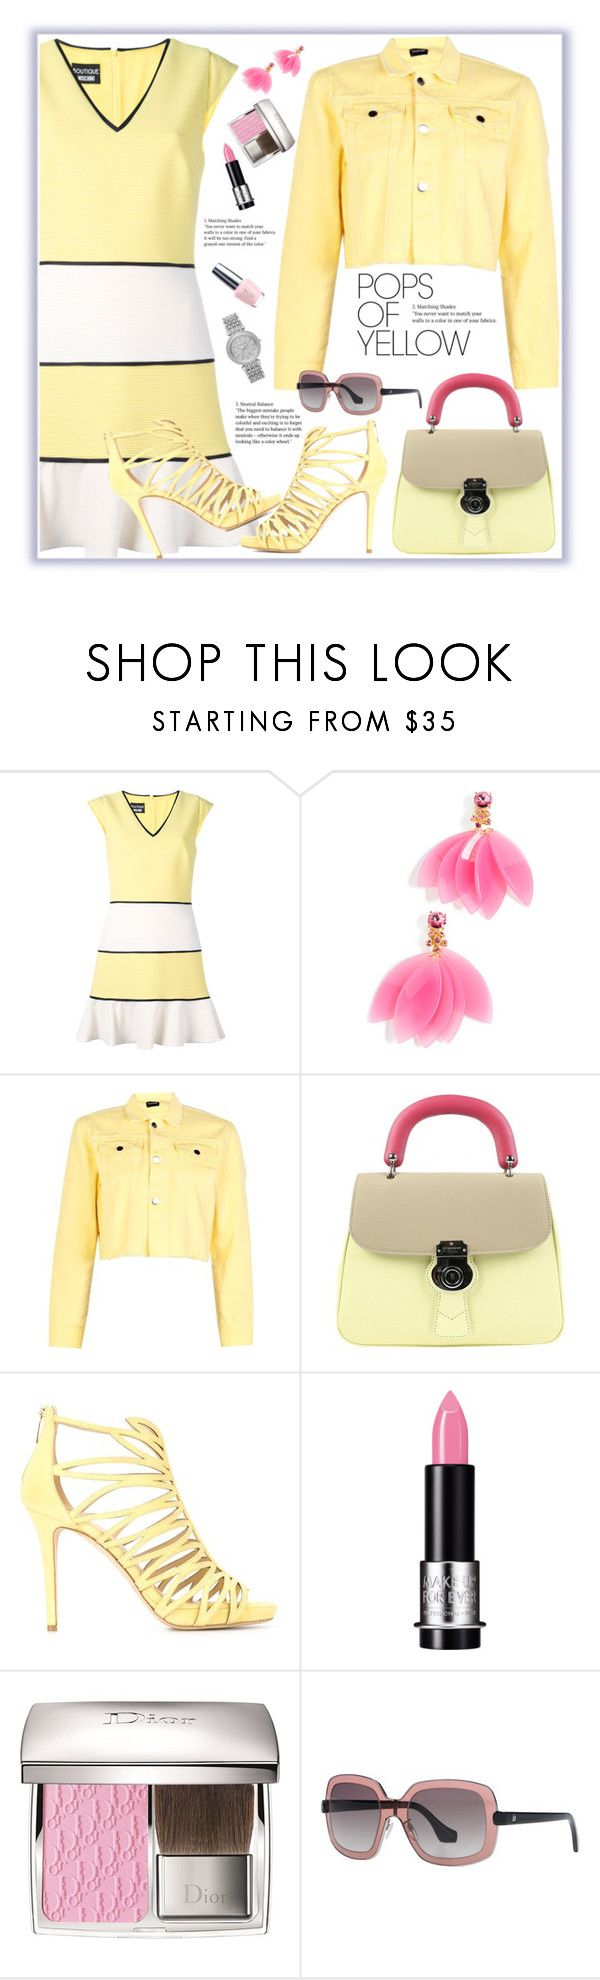 """""""Pops Of Yellow"""" by orrinn ❤ liked on Polyvore featuring Boutique Moschino, Oscar de la Renta, Burberry, Jimmy Choo, MAKE UP FOR EVER, OPI, Balenciaga, Michael Kors, PopsOfYellow and NYFWYellow"""